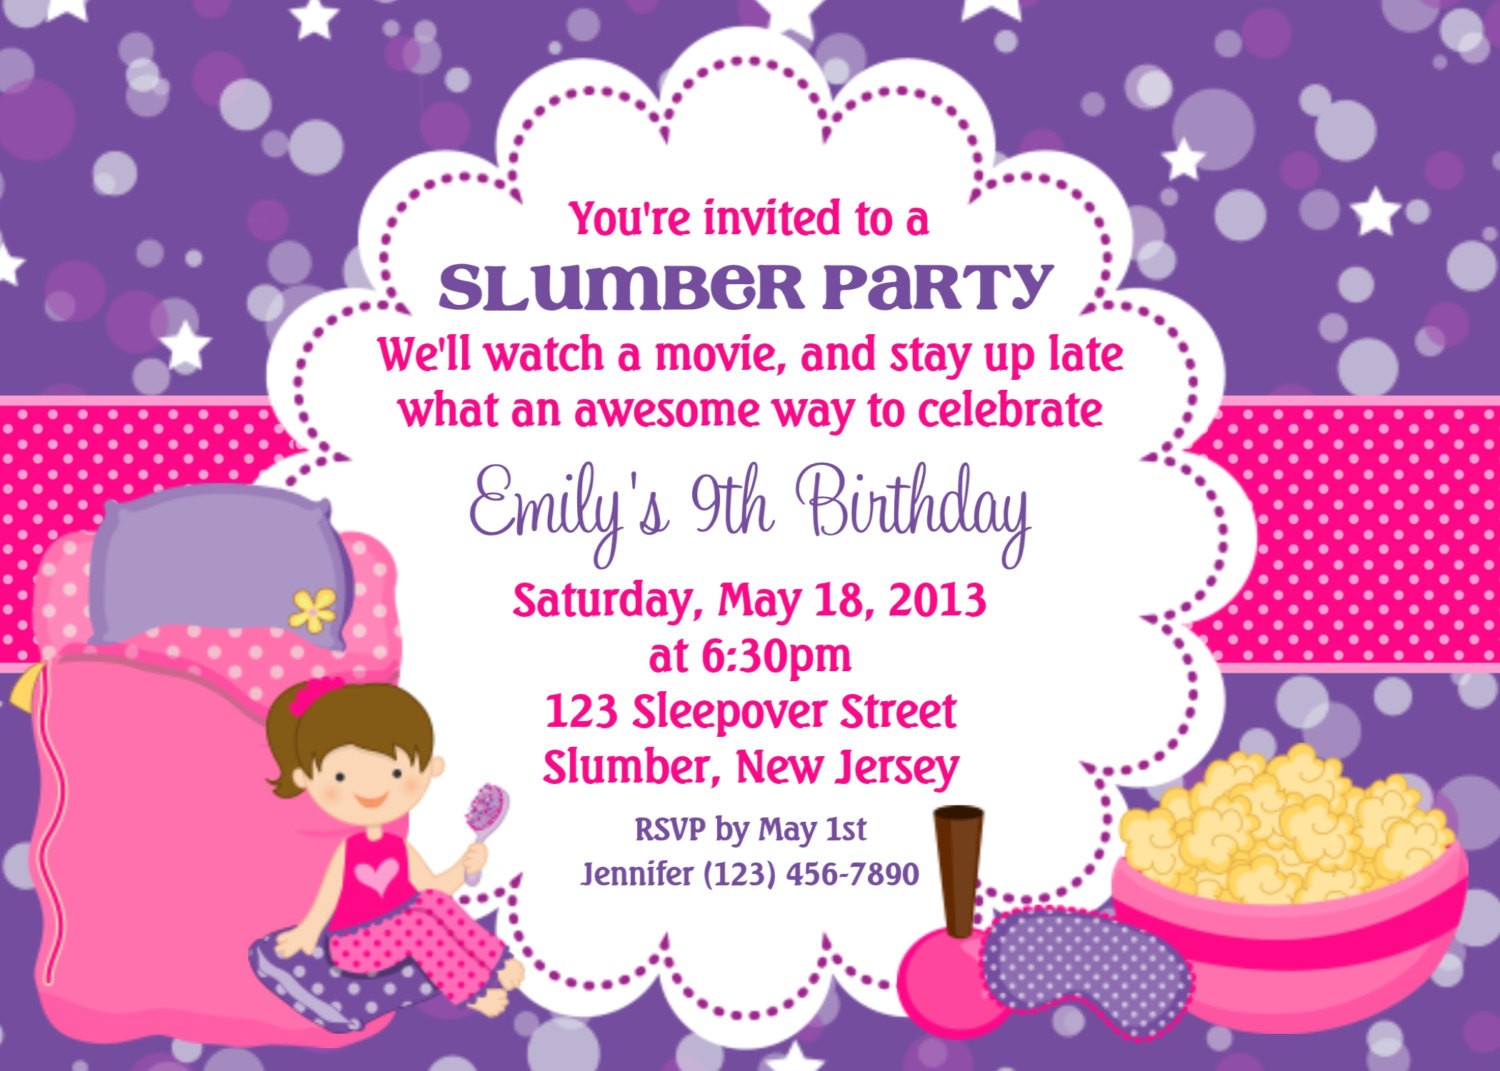 Best ideas about Birthday Party Templates . Save or Pin Invitation Cards Now.